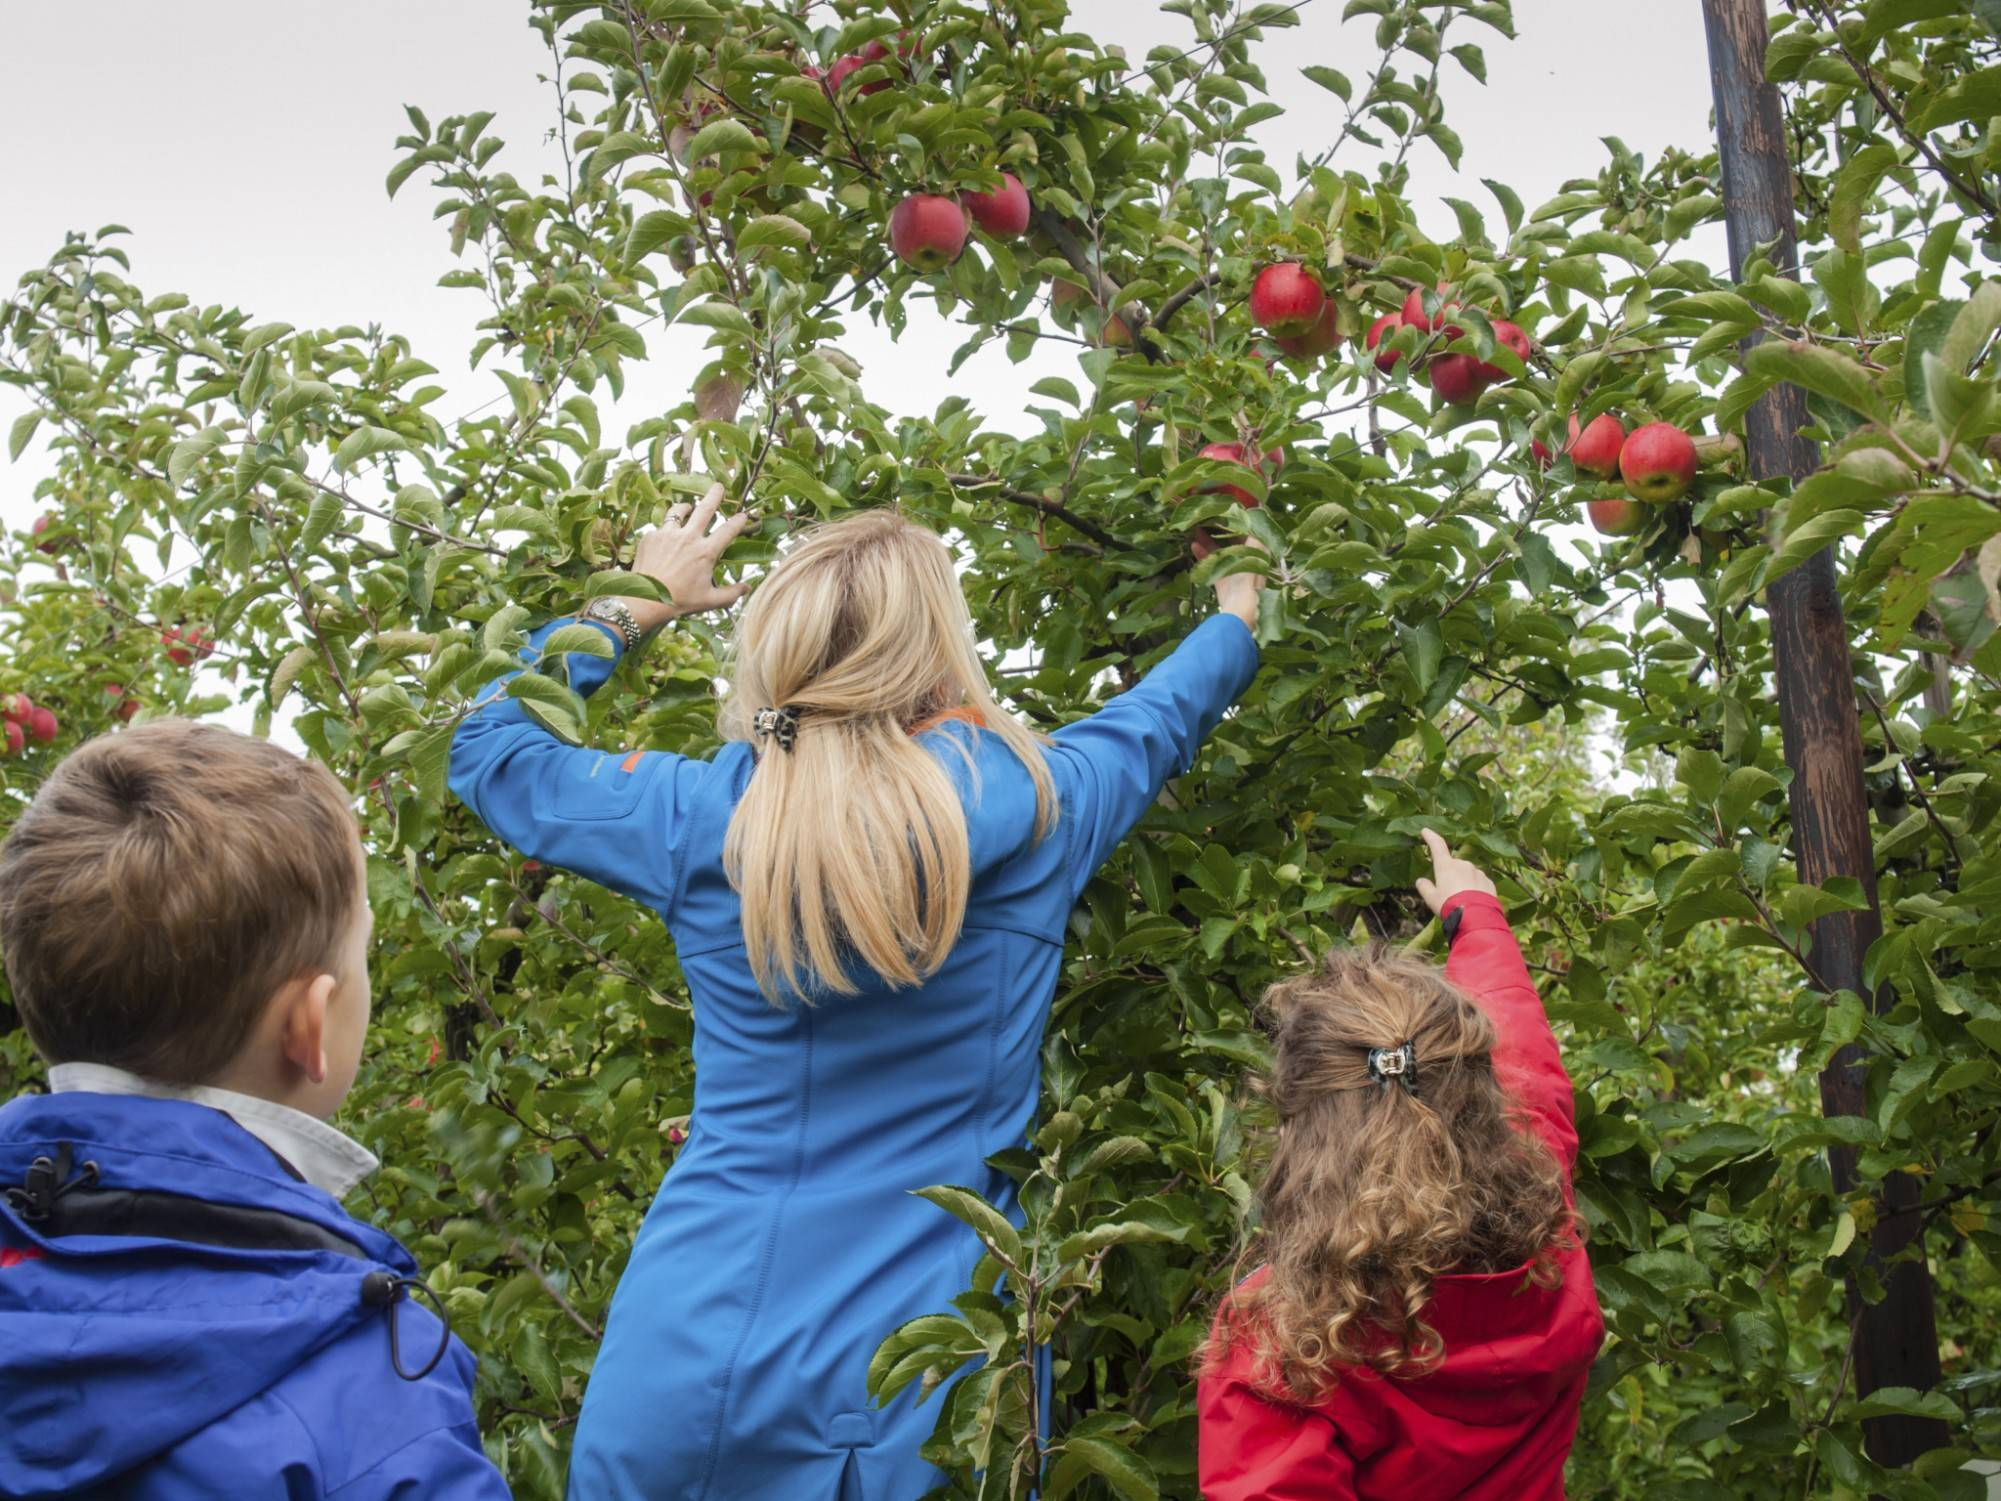 Apple-picking season is now in full swing at many local orchards.